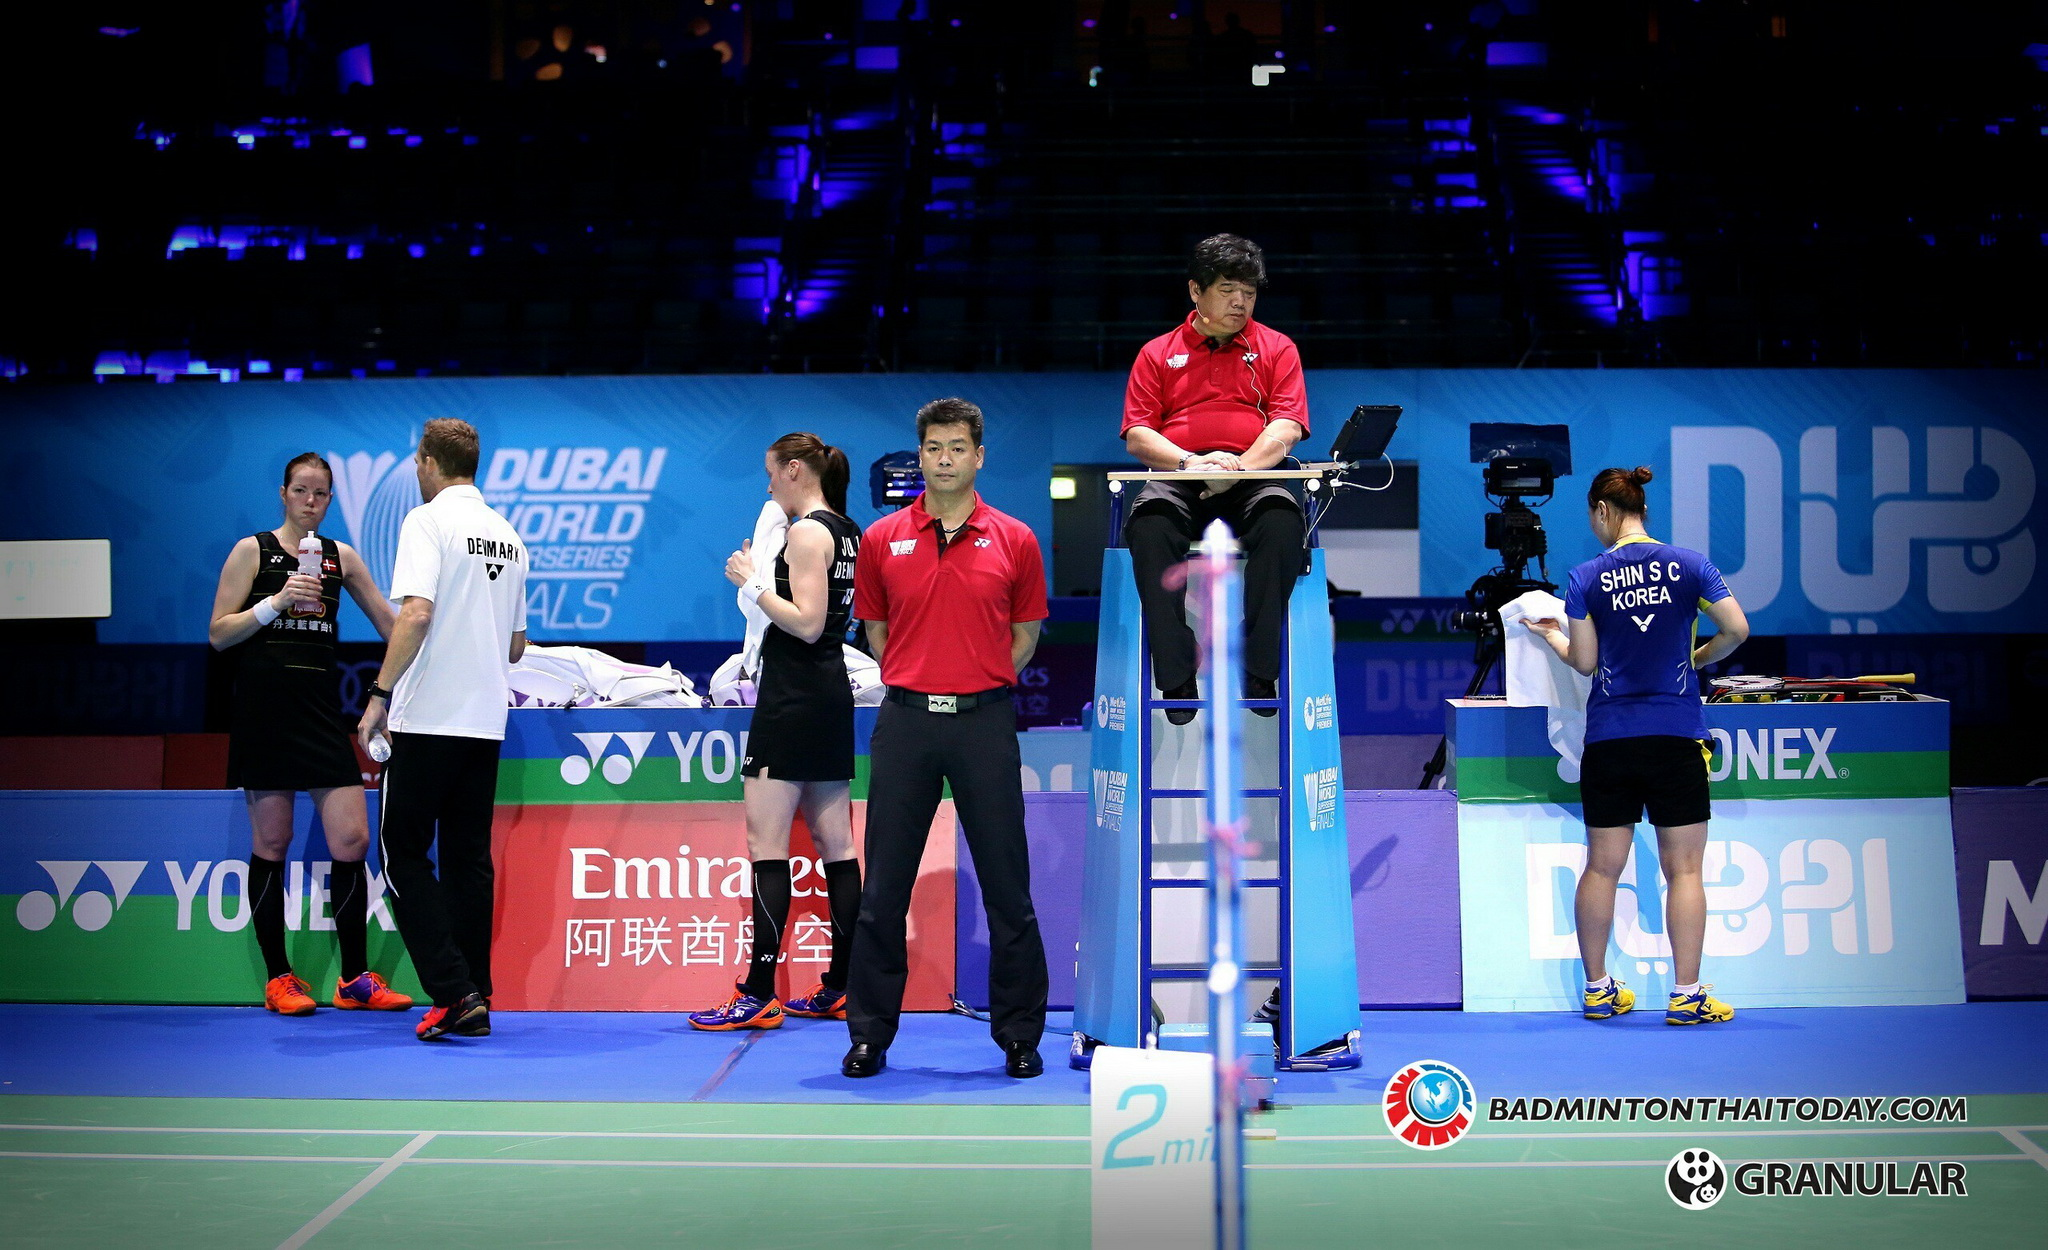 Kyung Eun Jung - Seung Chan Shin @ Dubai World Superseries Final 2016 รูปภาพกีฬาแบดมินตัน